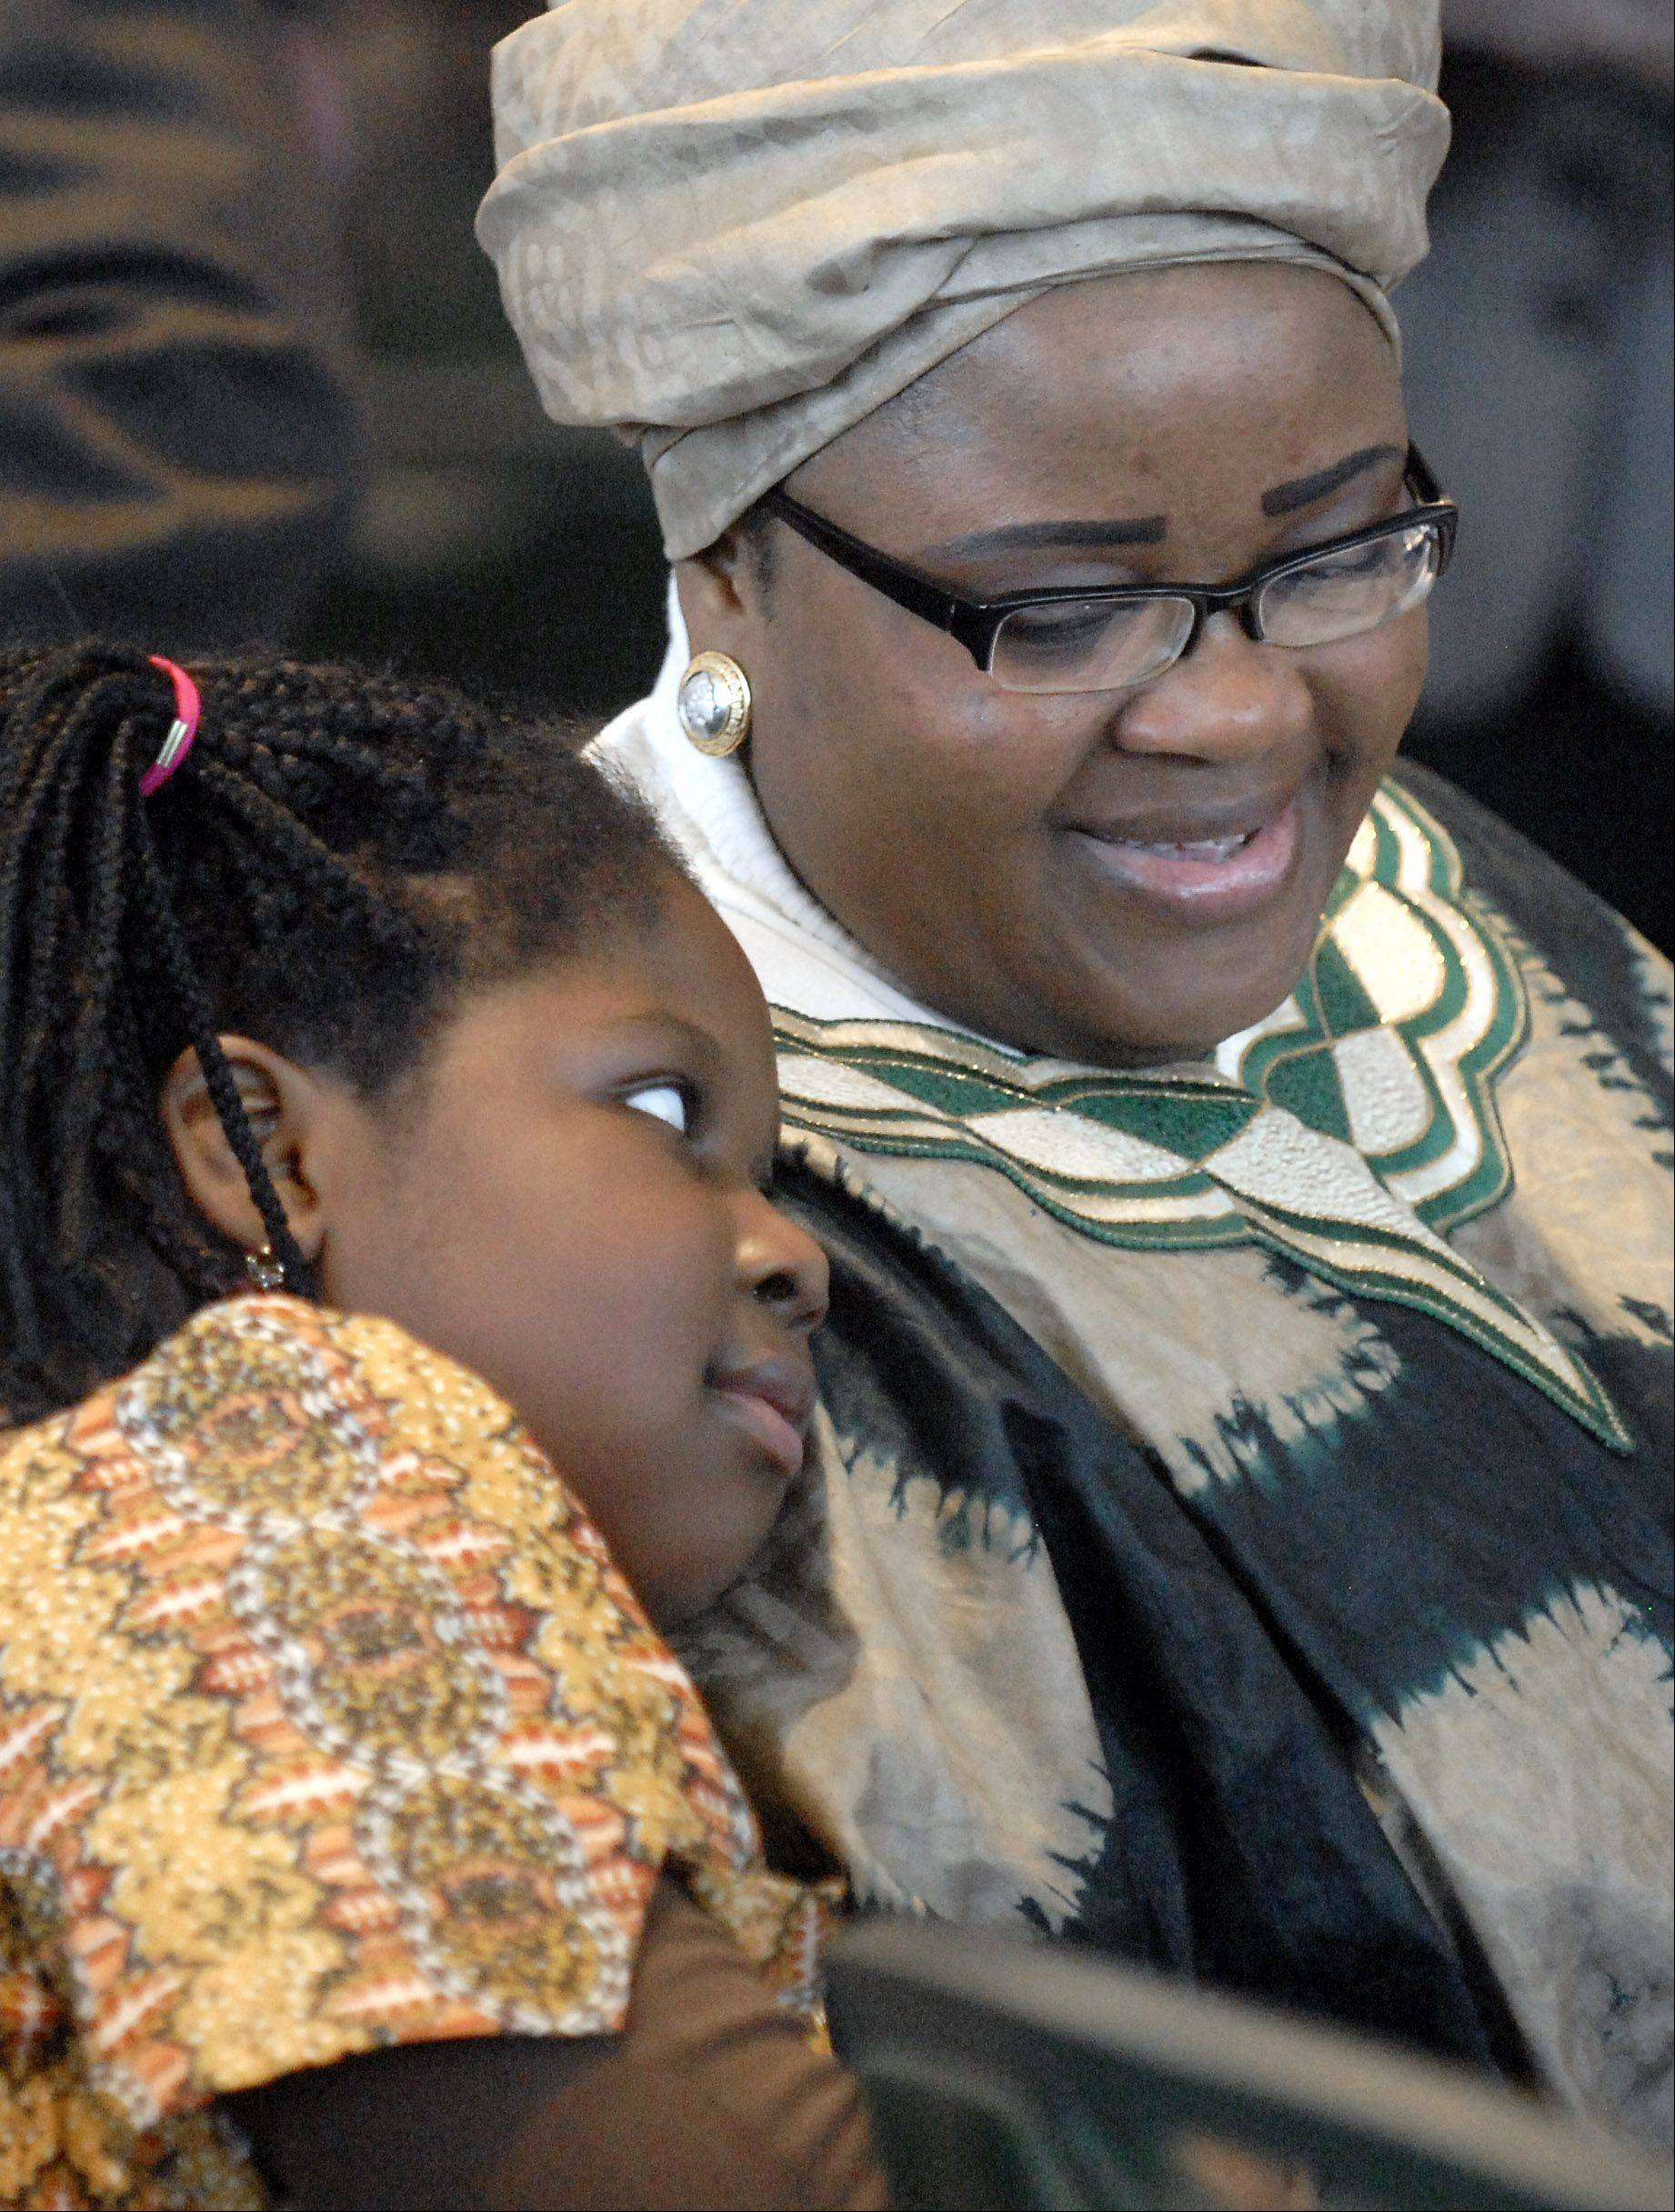 Zoe-Anna Wilson, 7, of Bolingbrook and her mother, Daisy Viyuoh, took part in the annual Martin Luther King Jr. prayer breakfast in 2012.